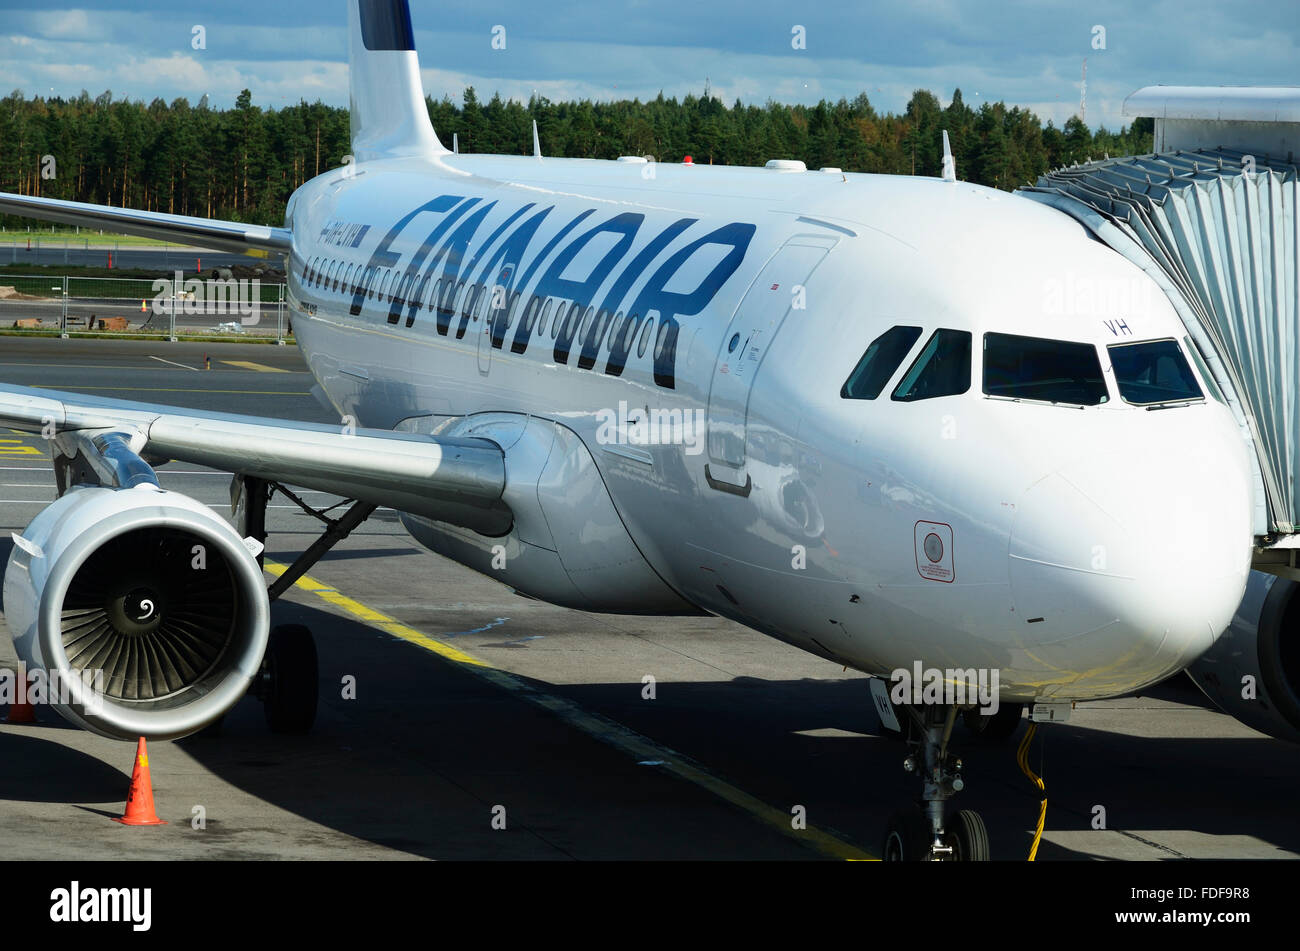 Docked, Finnair, aircraft in the Helsinki Airport. Finland - Stock Image